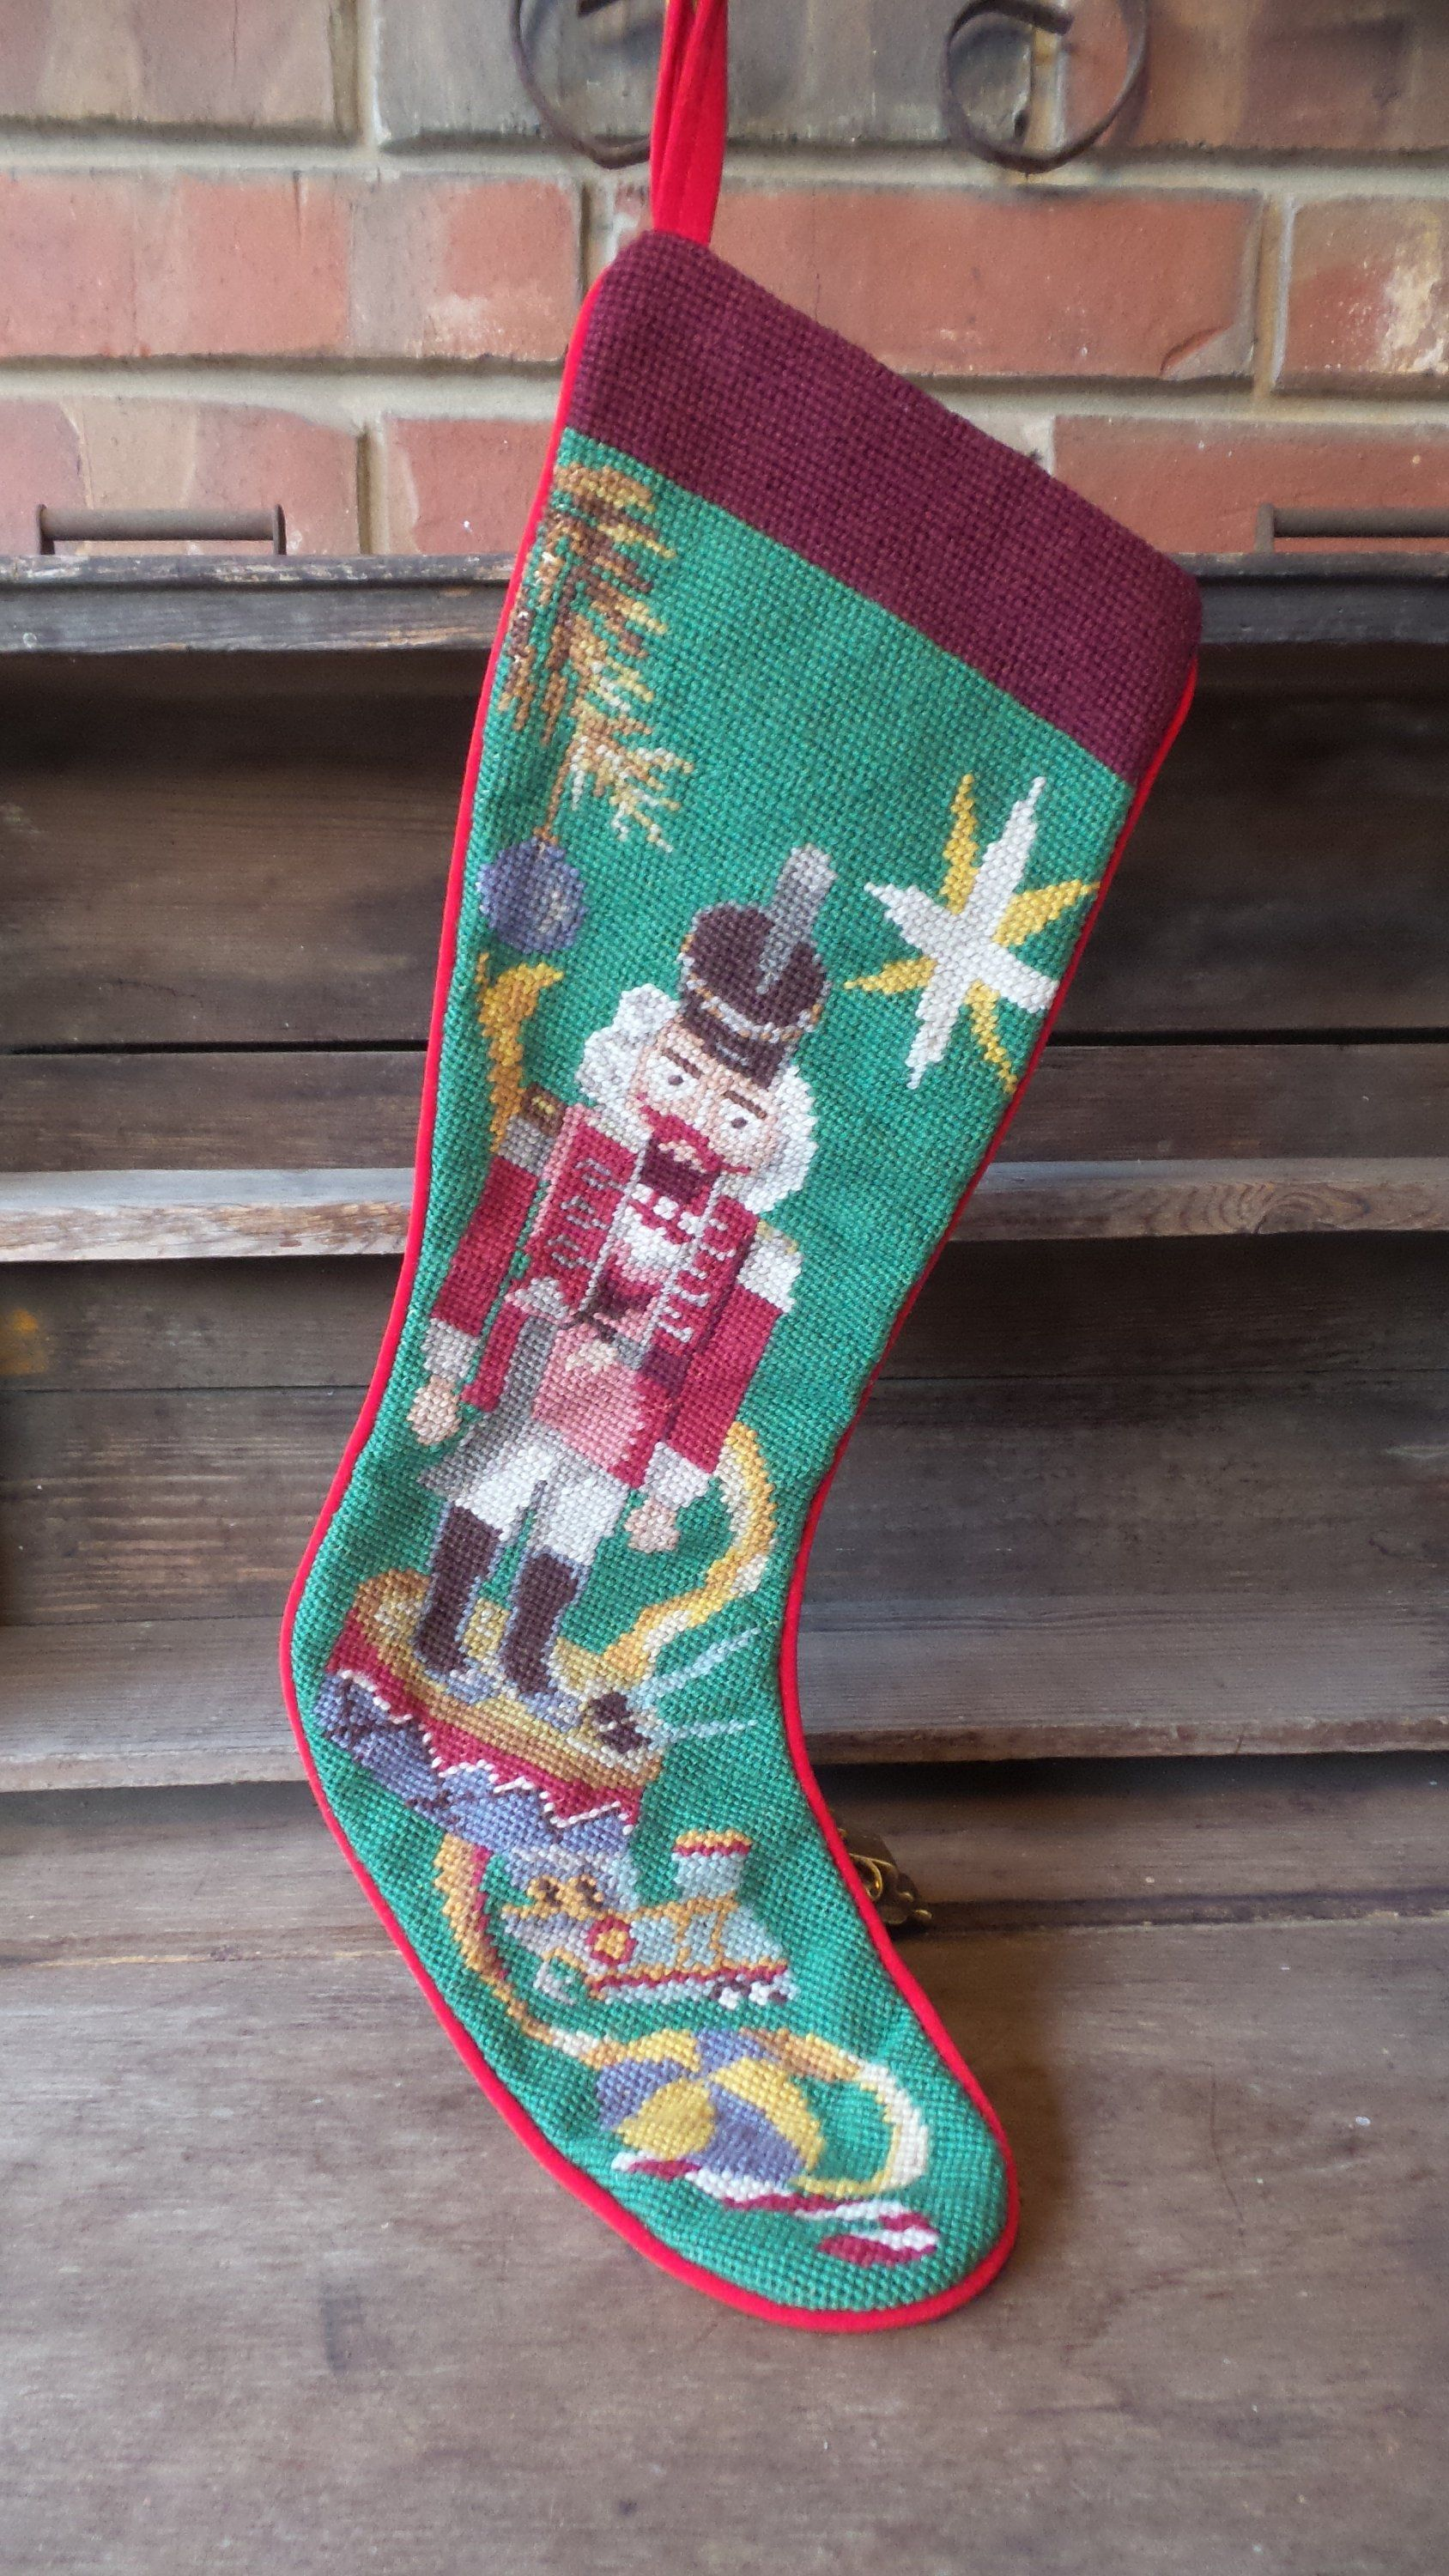 Vintage Needlepoint Christmas Stockings.Needlepoint Nutcracker Stocking Tapestry Stocking Vintage